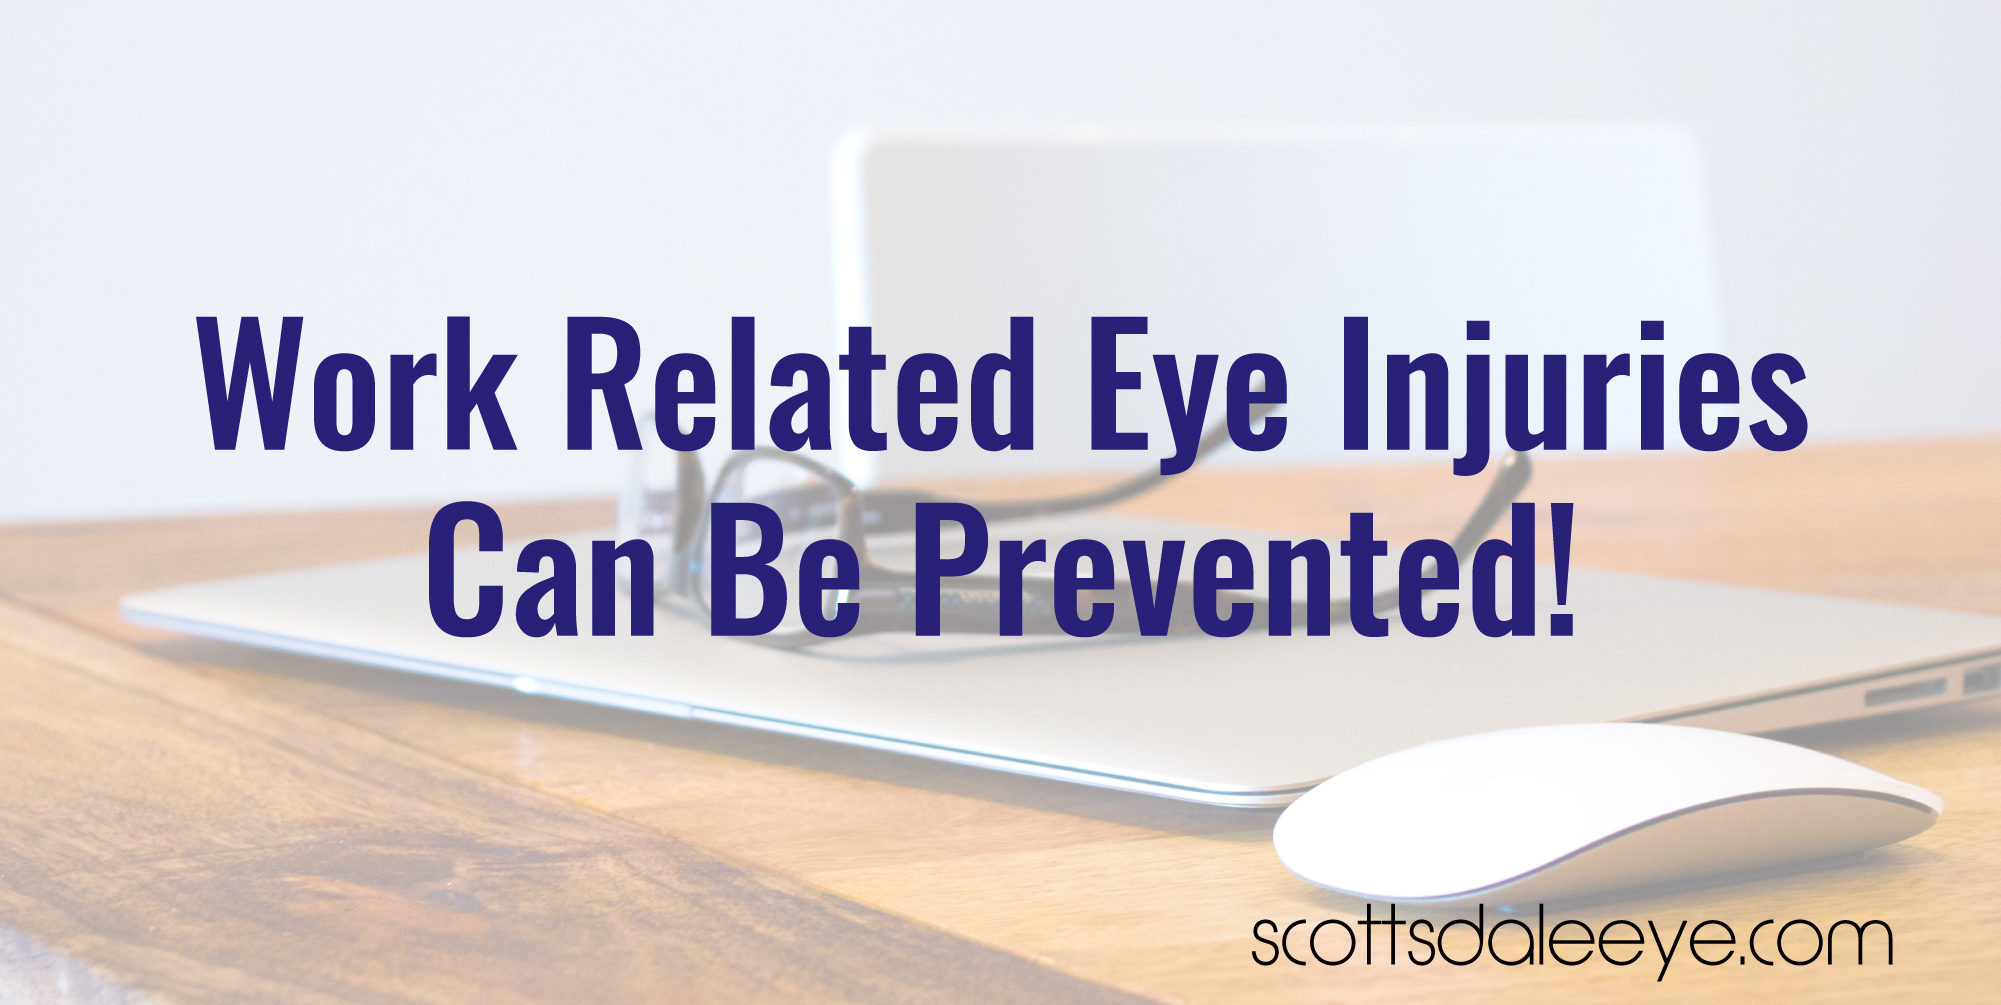 Ophthalmologists Say Work Related Eye Injuries Can be Avoided